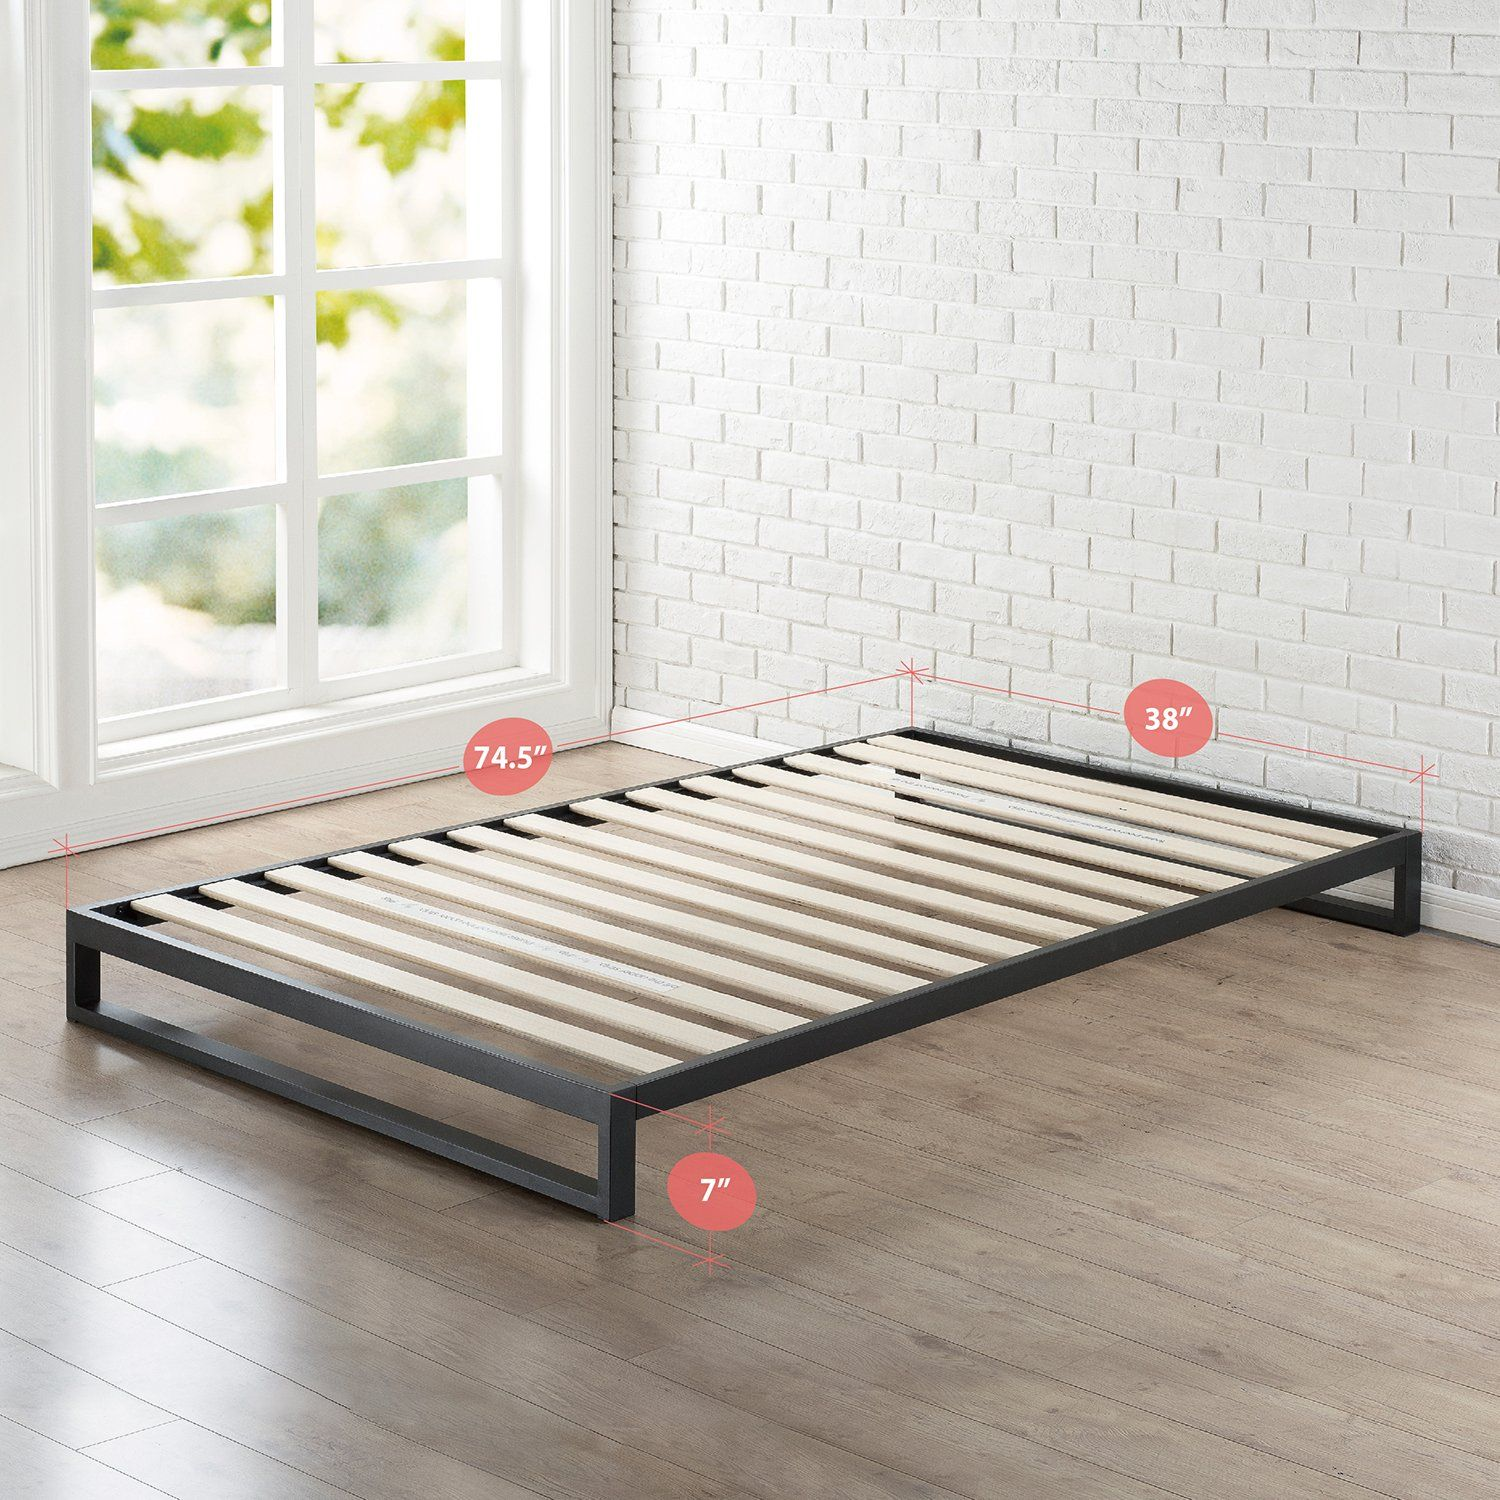 Pin By Hartman Haus On Mikis Rachel Bed Frame Mattress